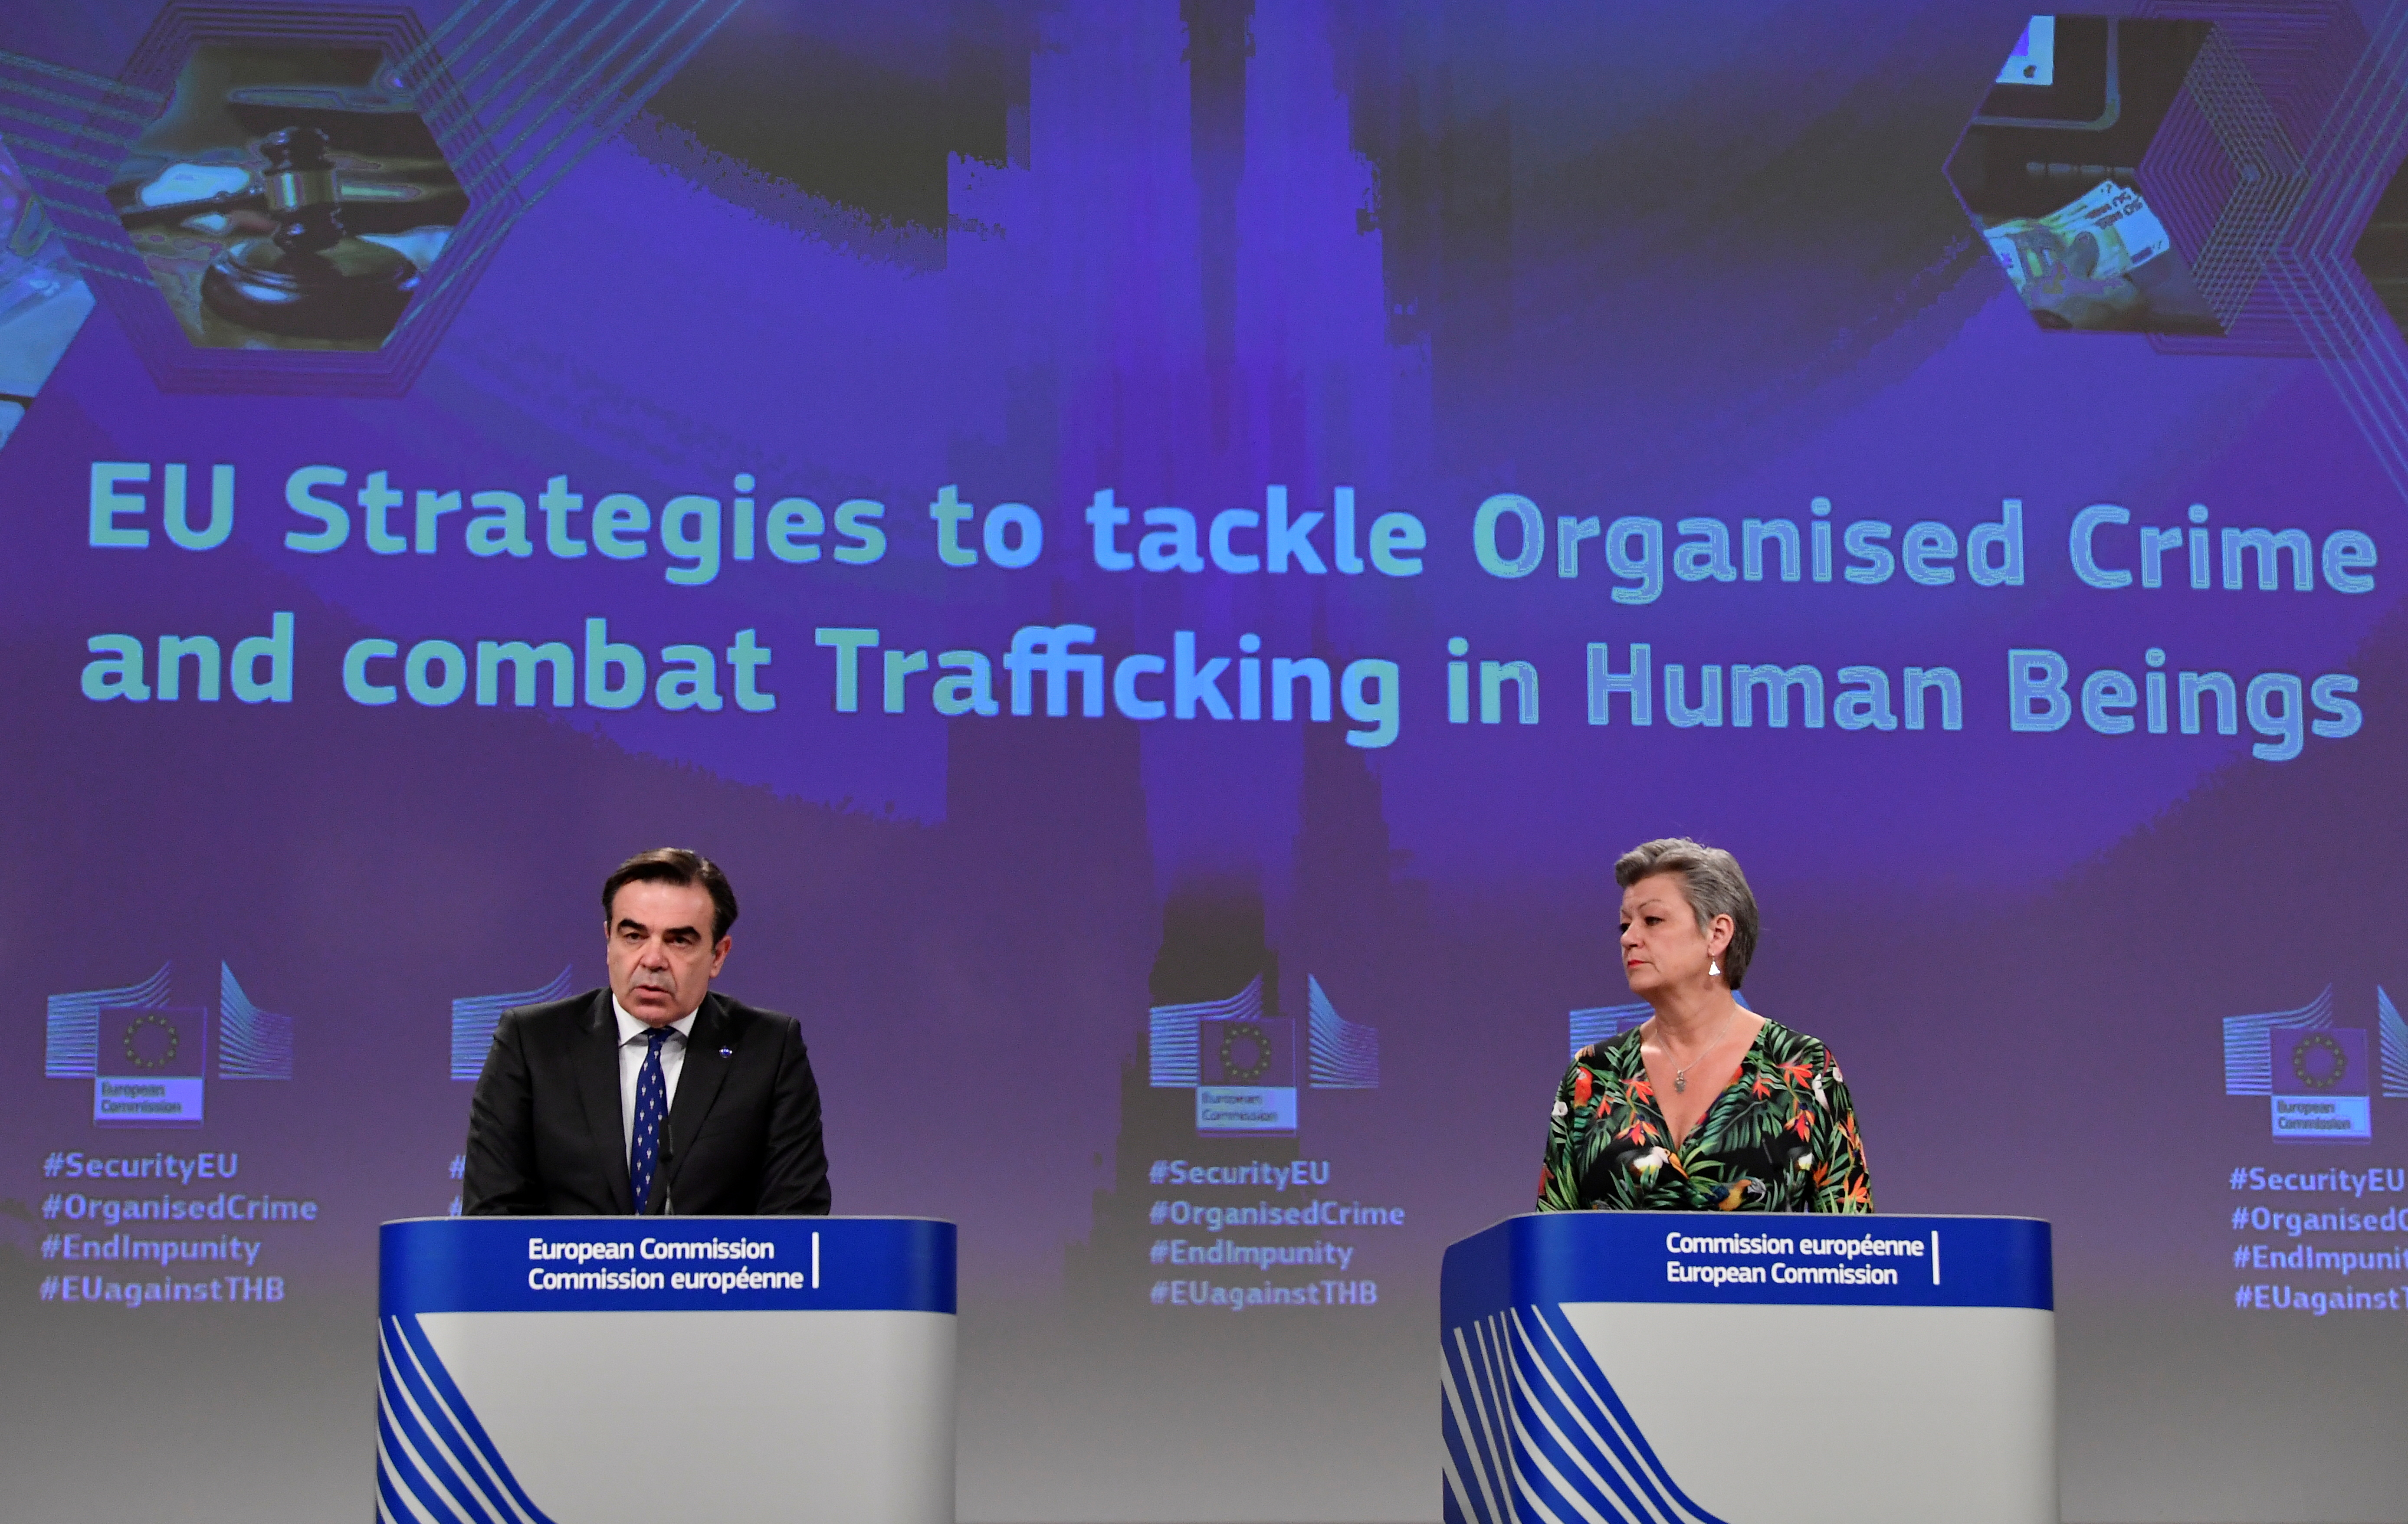 EU Commission Vice-President Margaritis Schinas and European Commissioner for Home Affairs Ylva Johansson attend a news conference at the EU headquarters in Brussels, Belgium April 14, 2021. John Thys/Pool via REUTERS